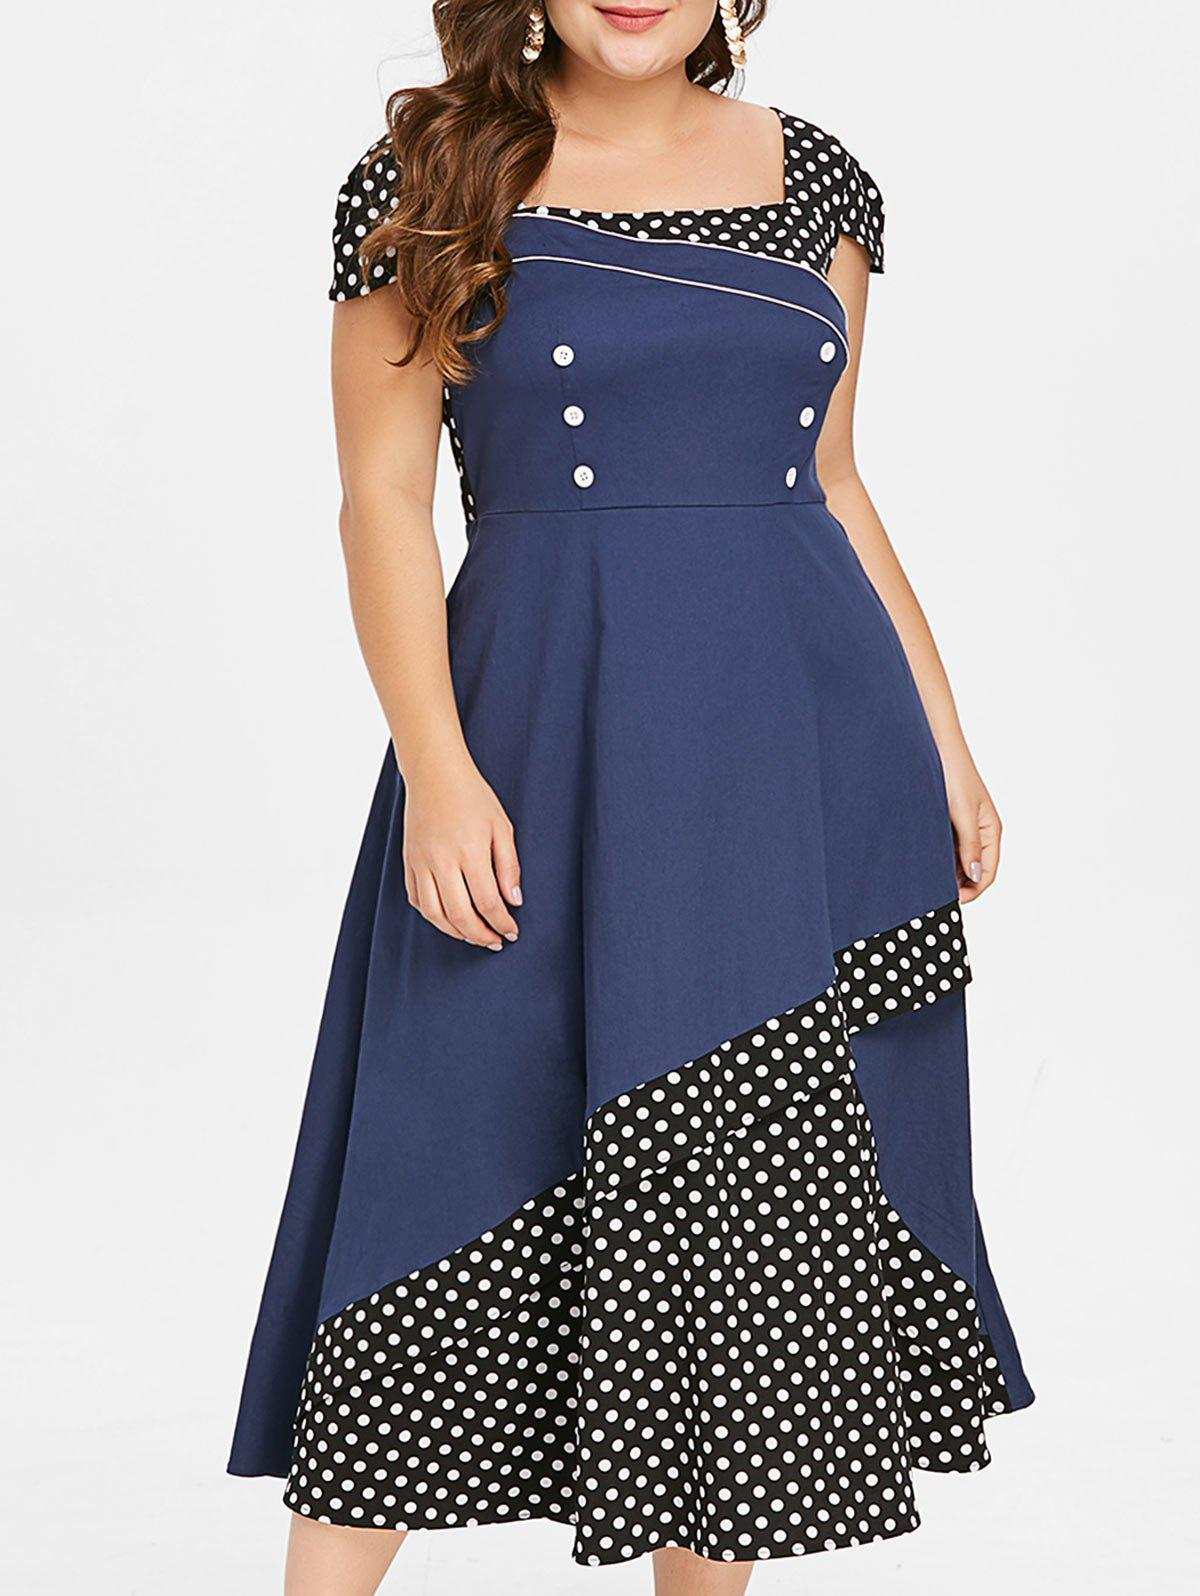 Fancy Plus Size Polka Dot Color Block Square Neck Vintage Dress